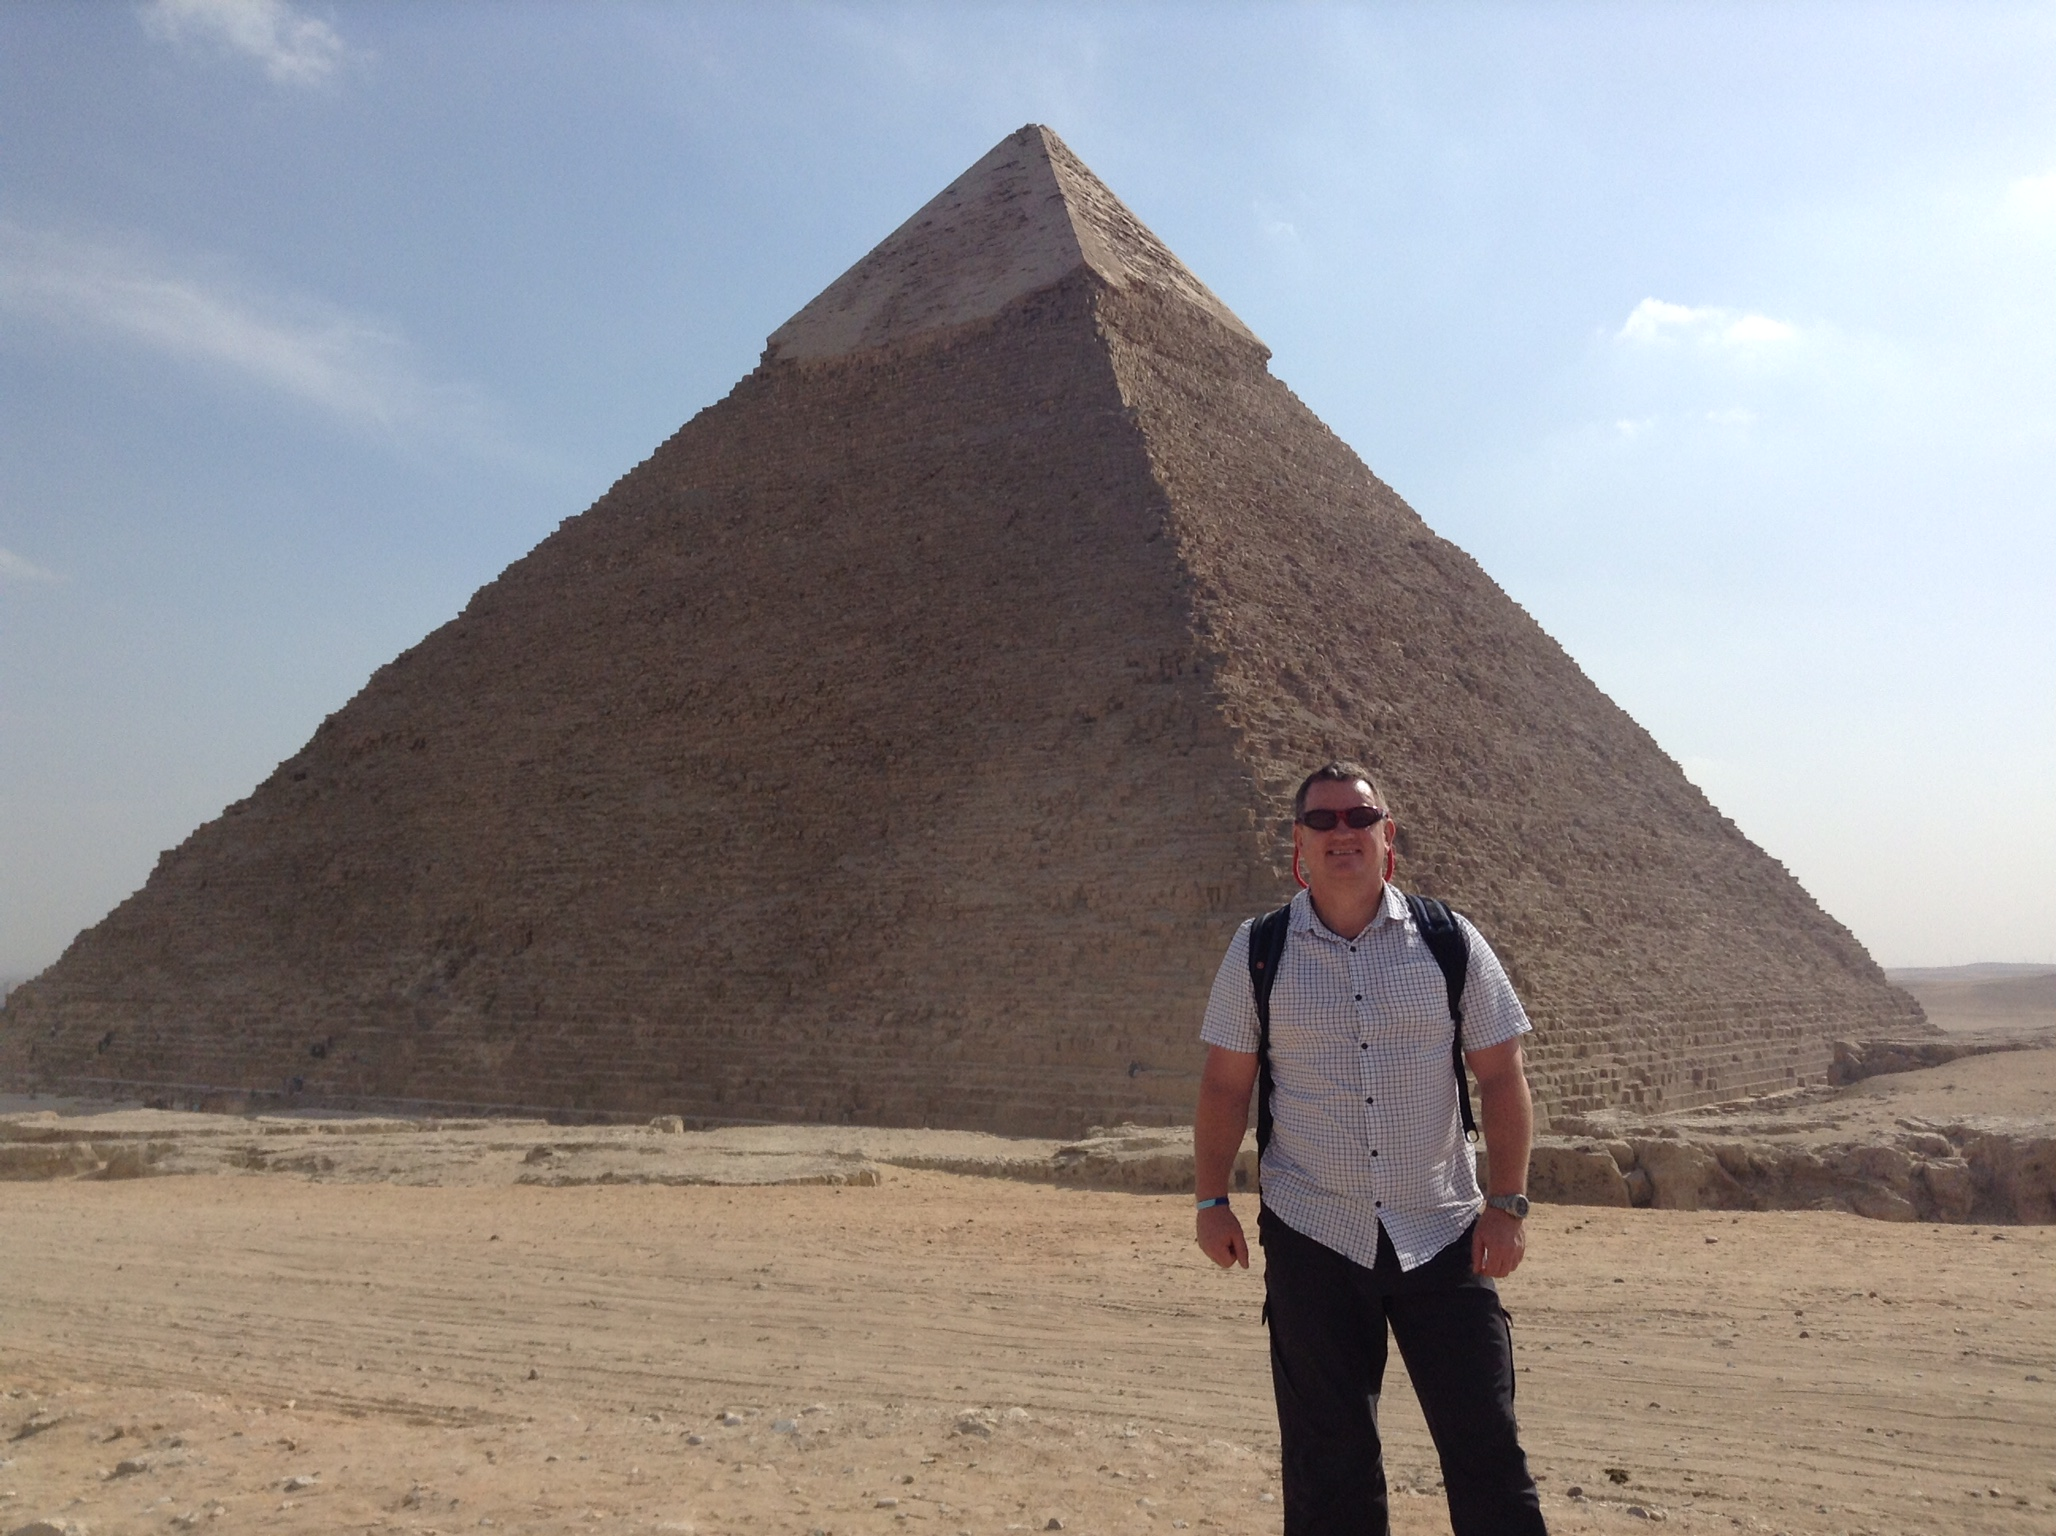 NOT the Great Pyramid !!